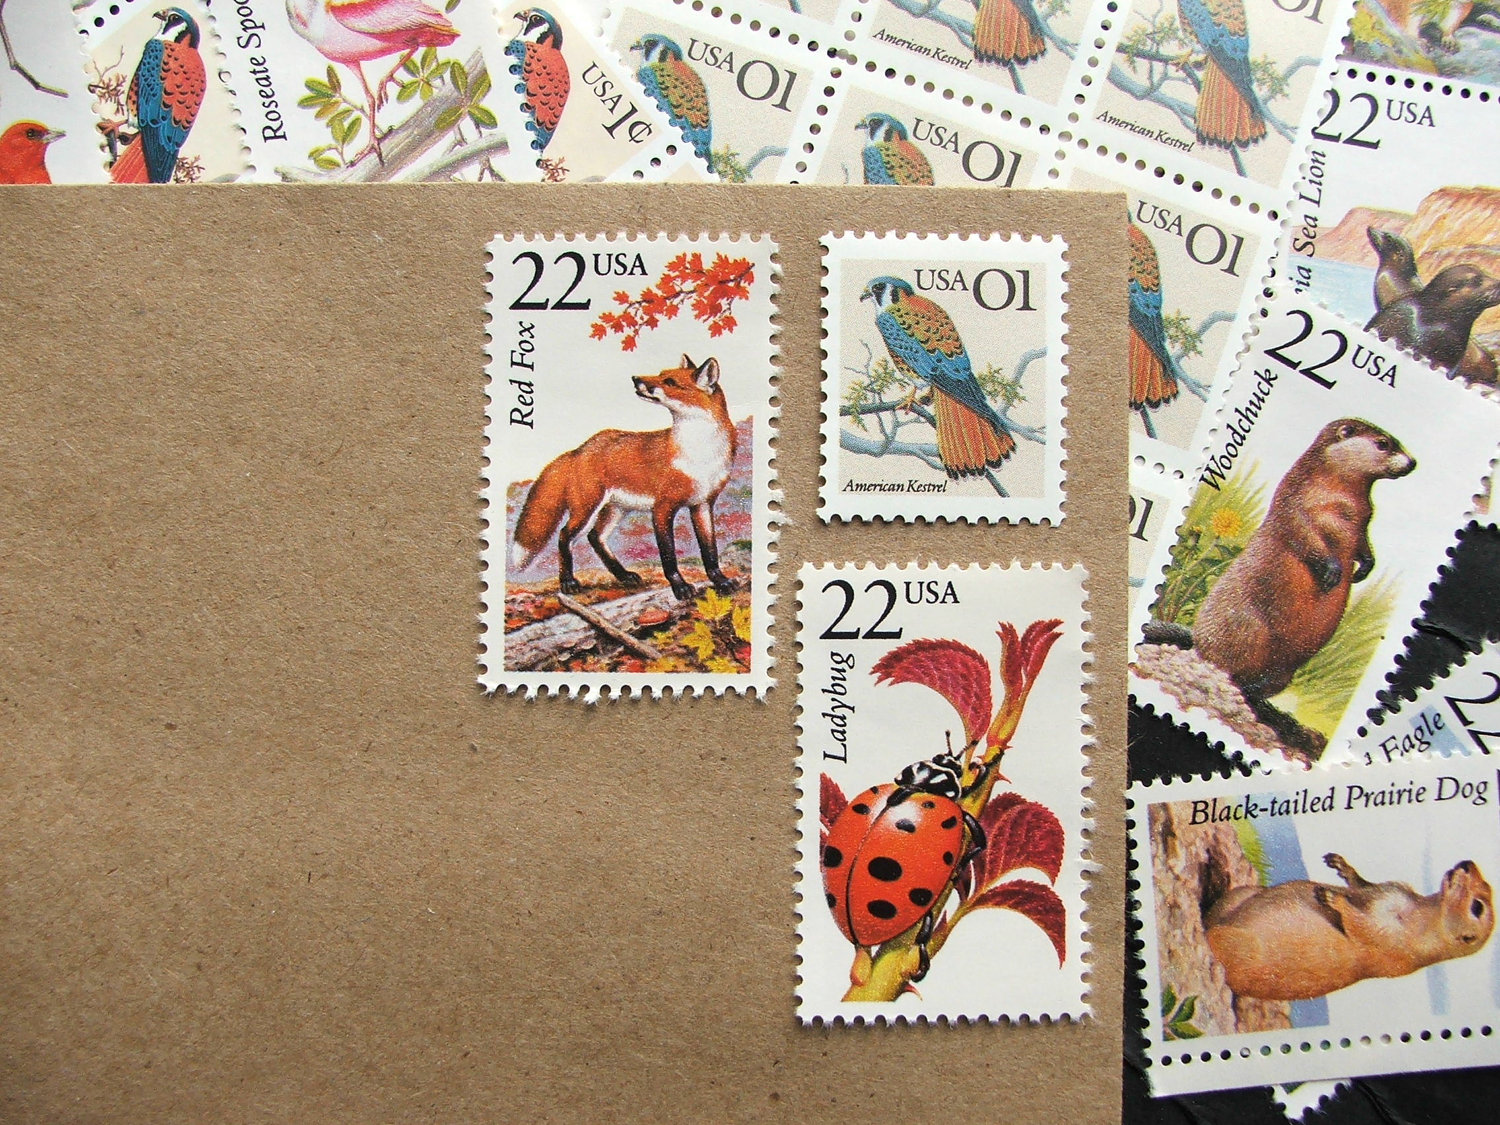 Stamps expire